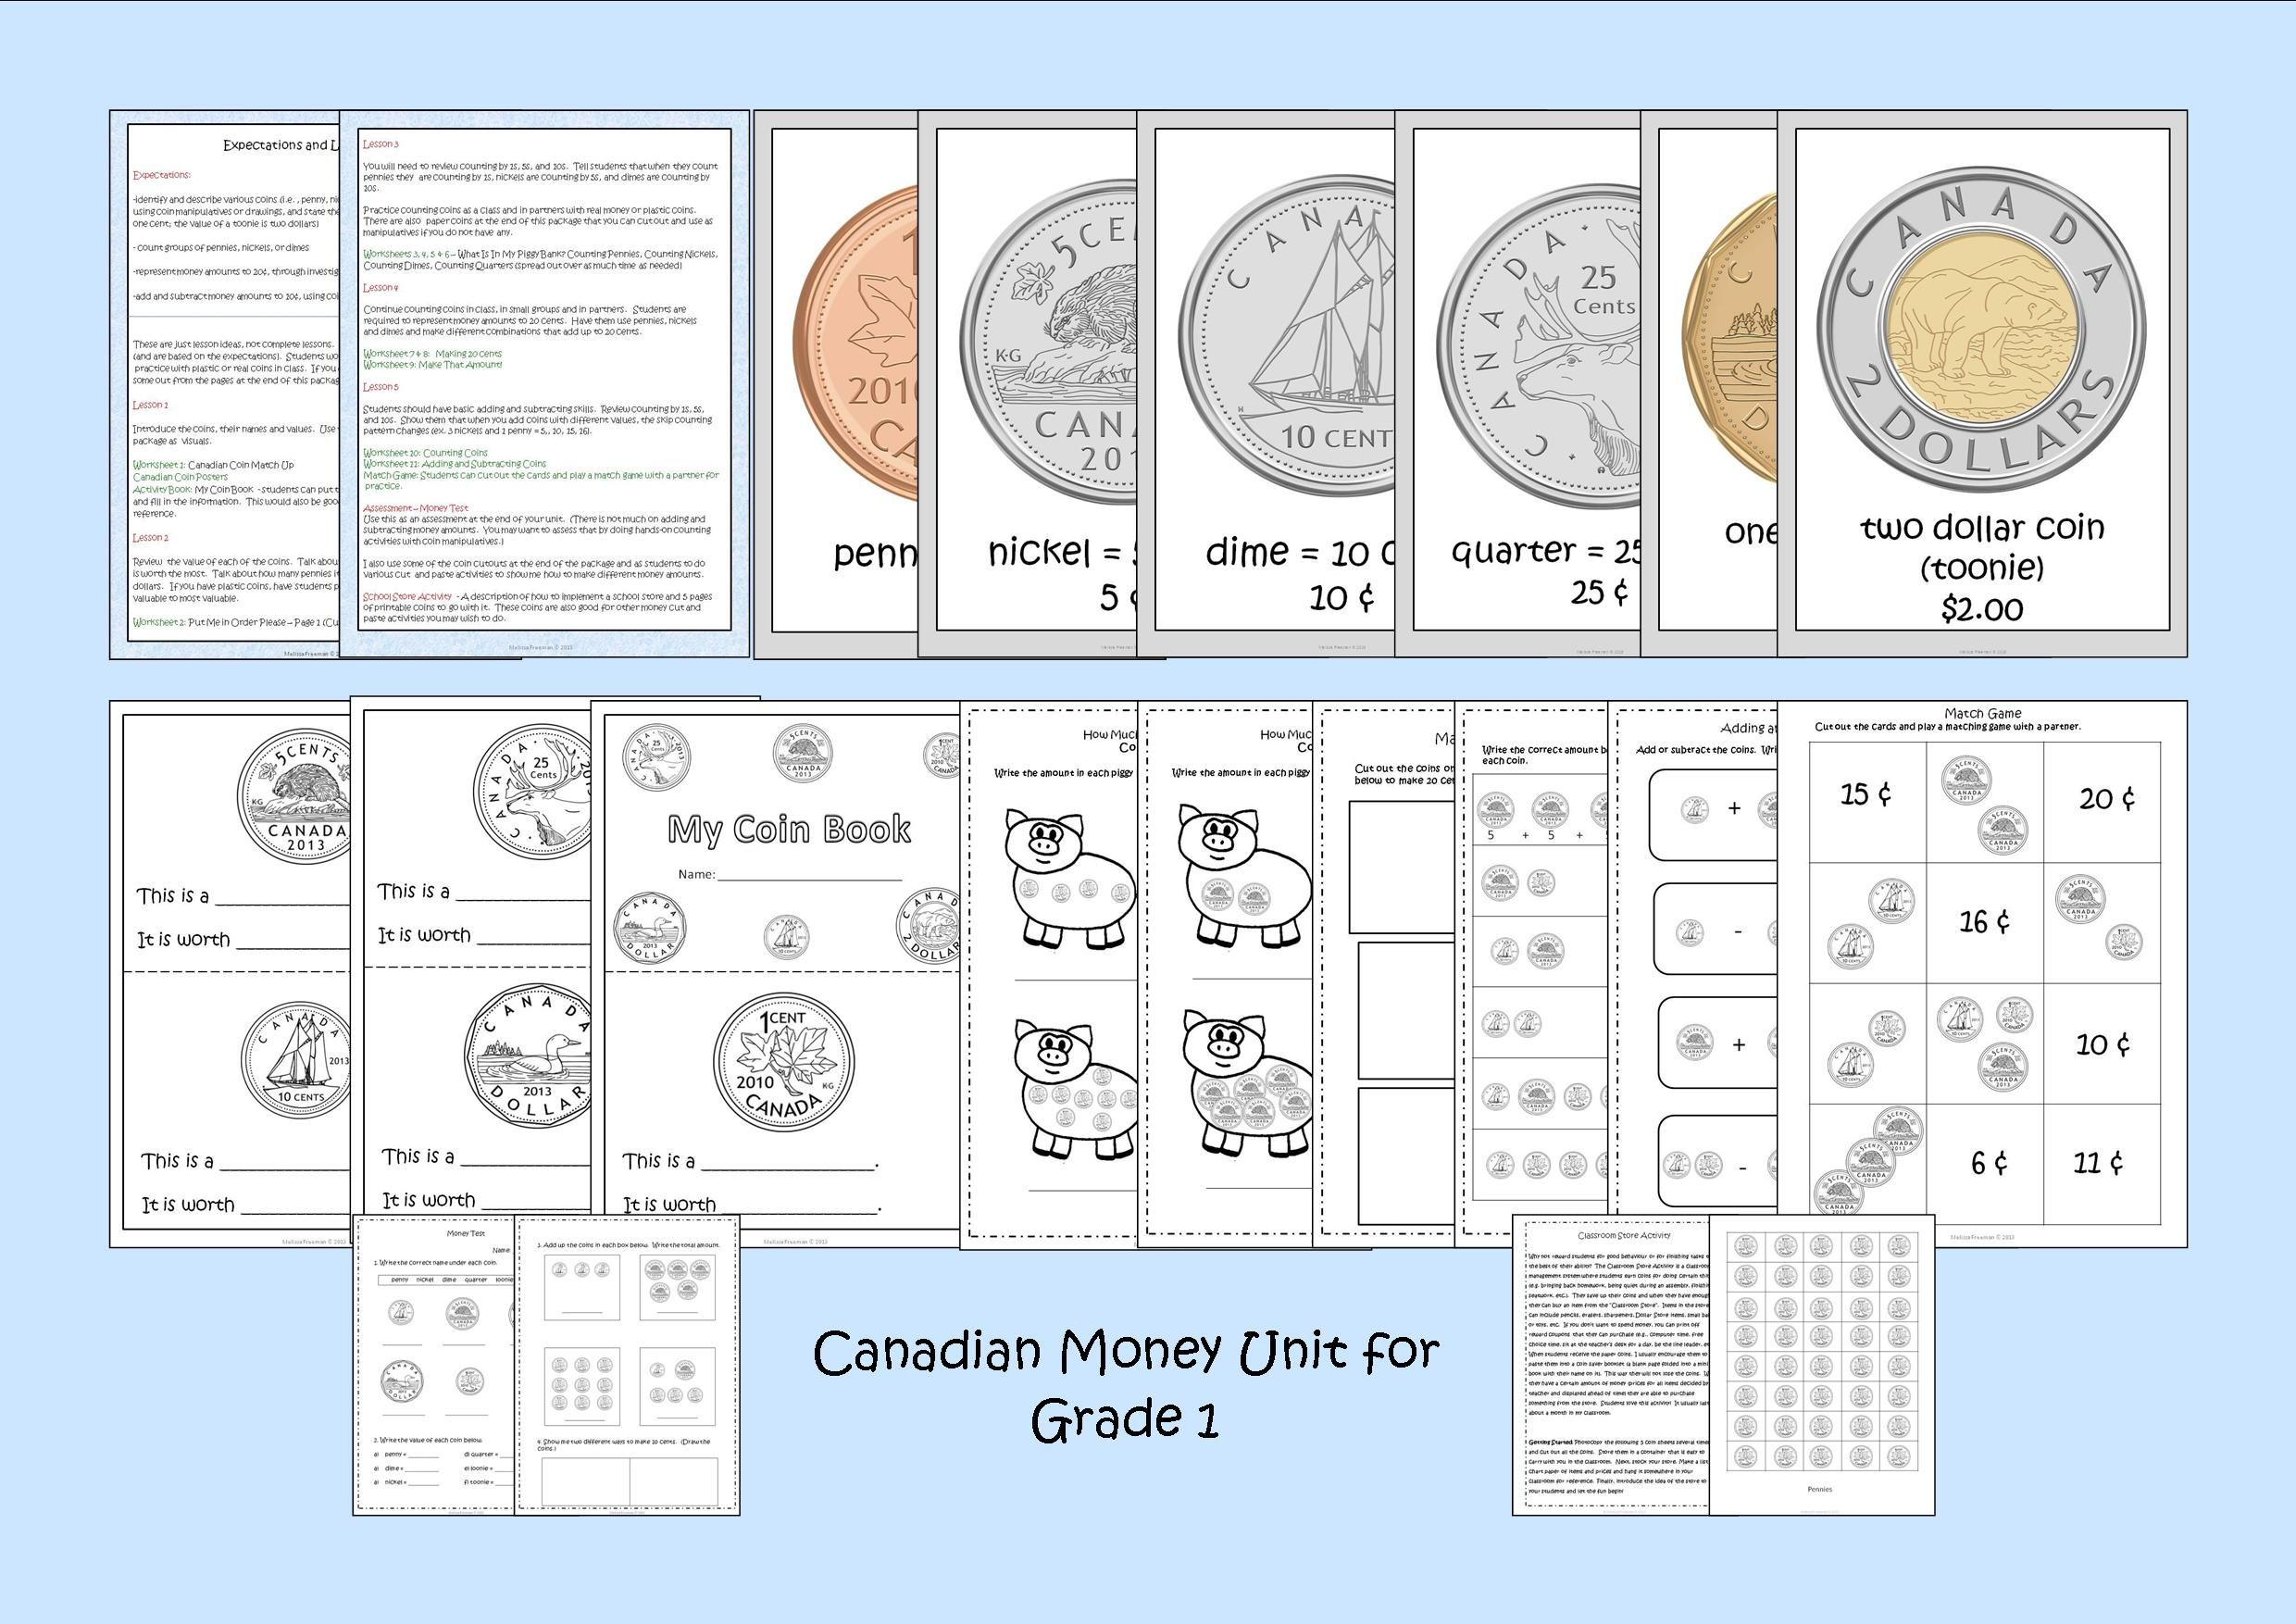 This Canadian Money Unit For Grade 1 Contains Lesson Ideas